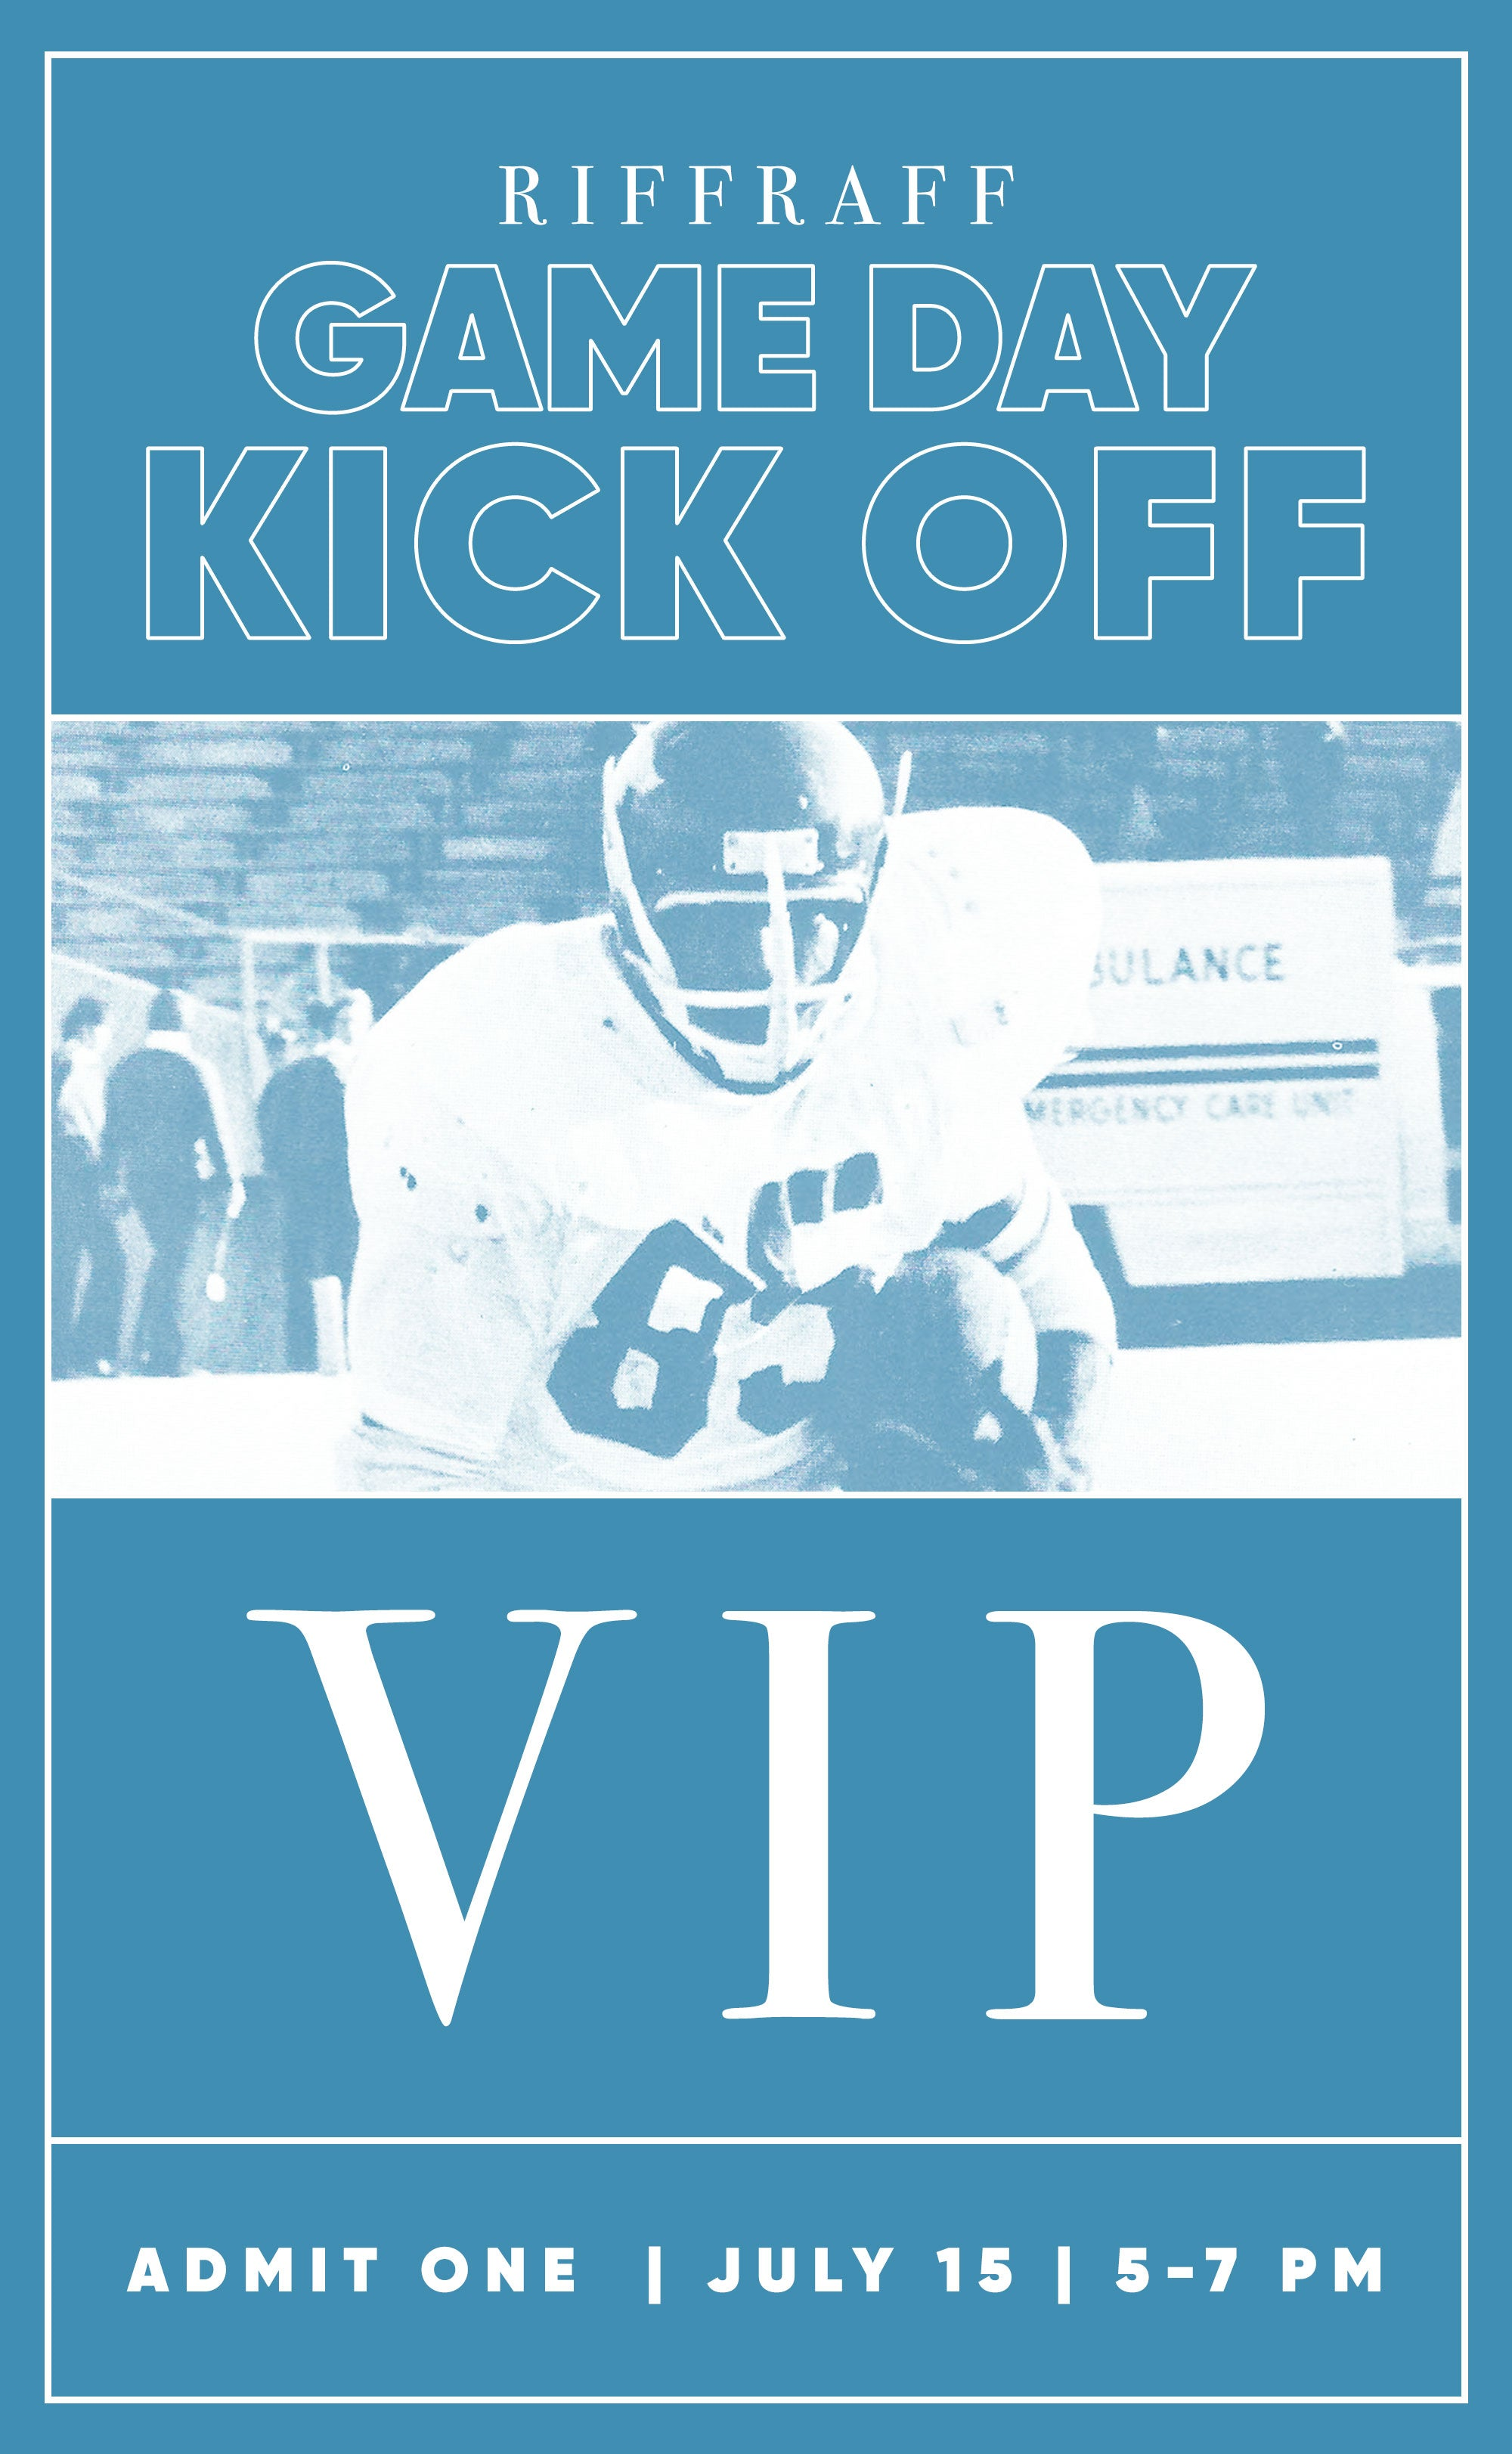 riffraff gameday kick off ticket - vip admission